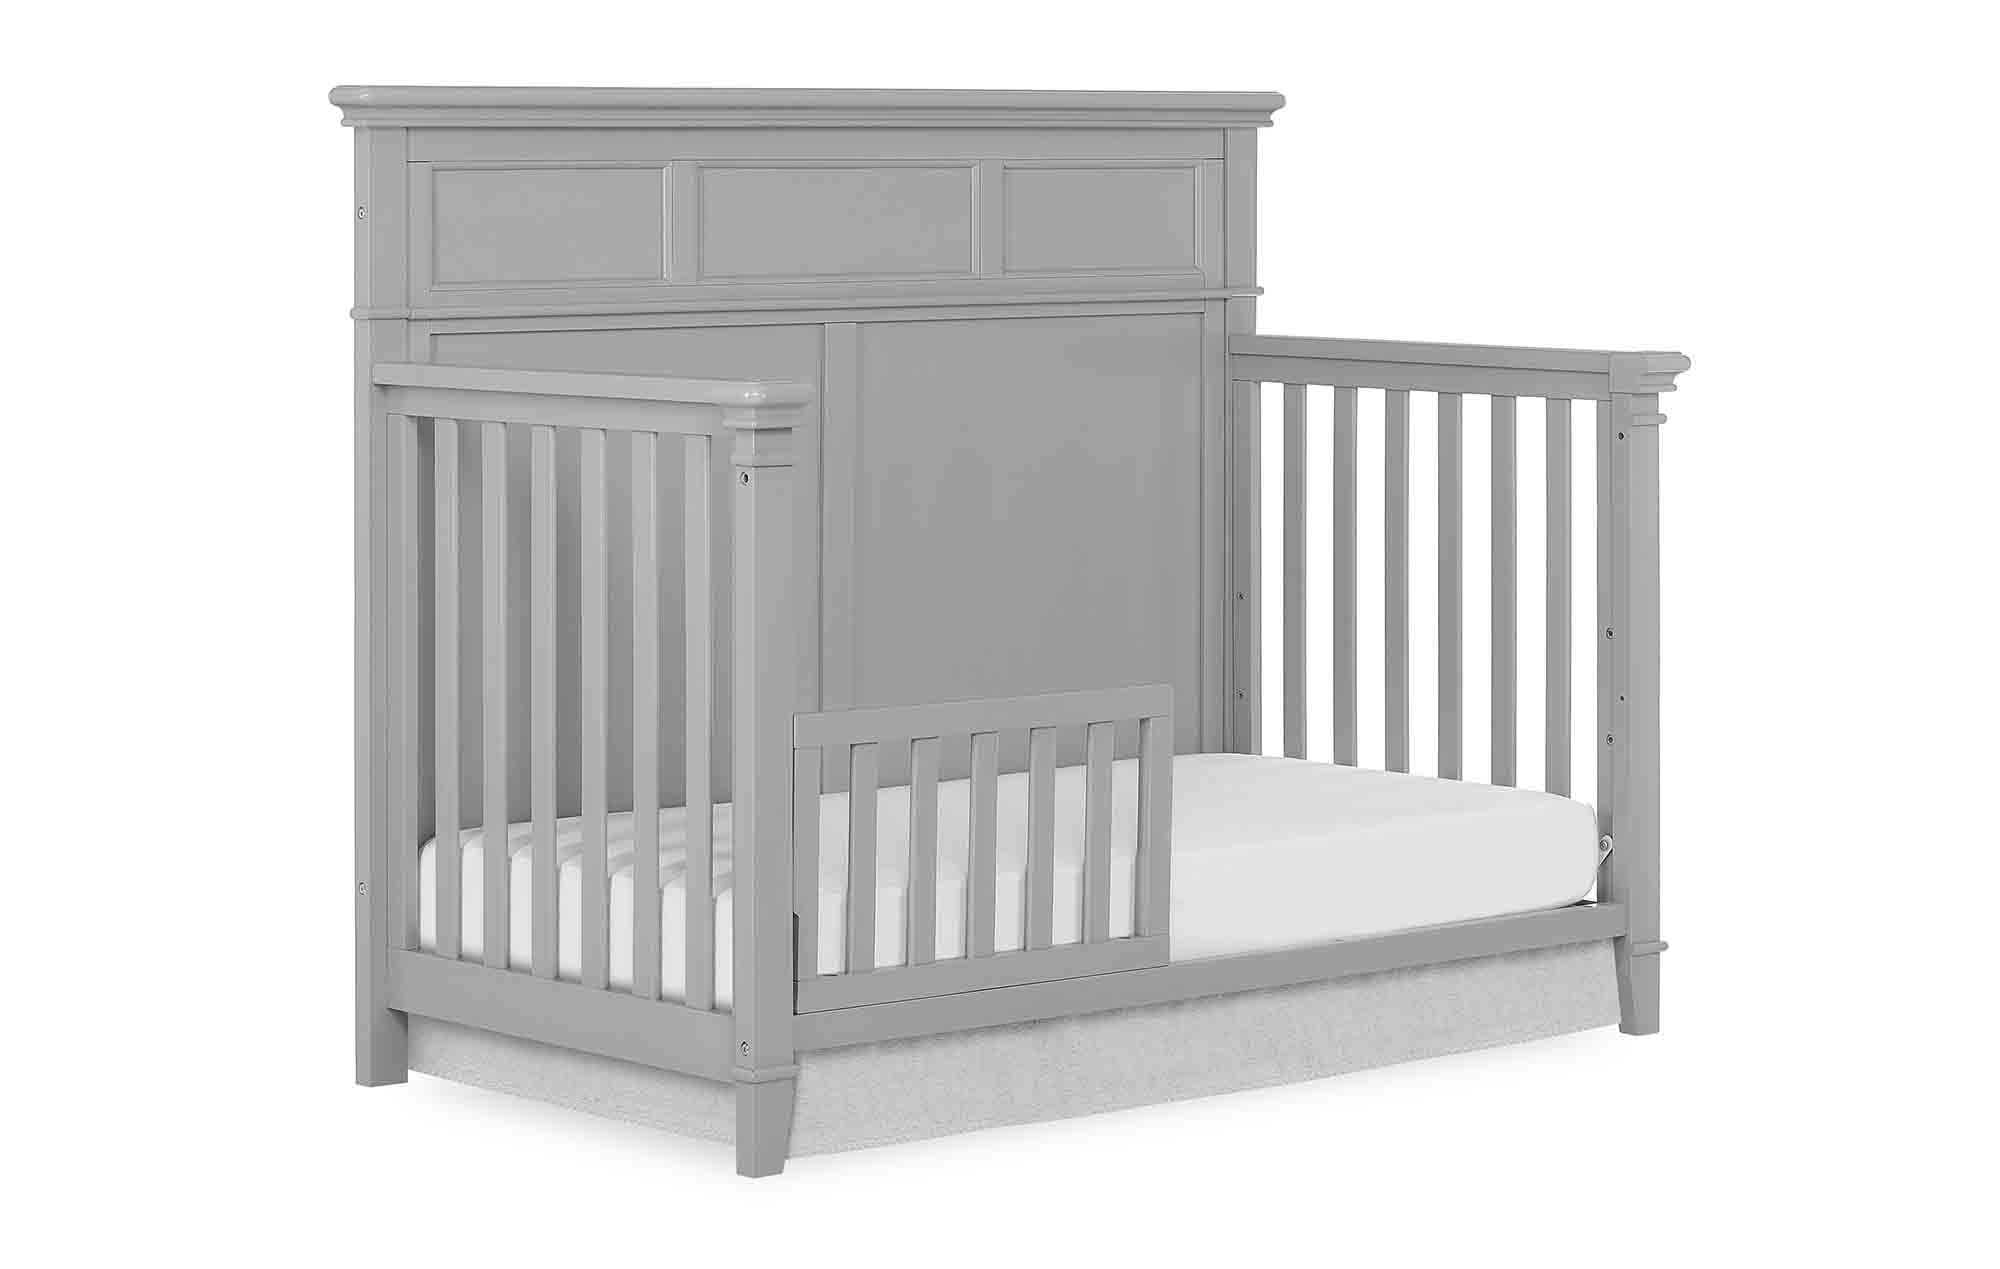 776-PG Blue Ridge Toddler Bed